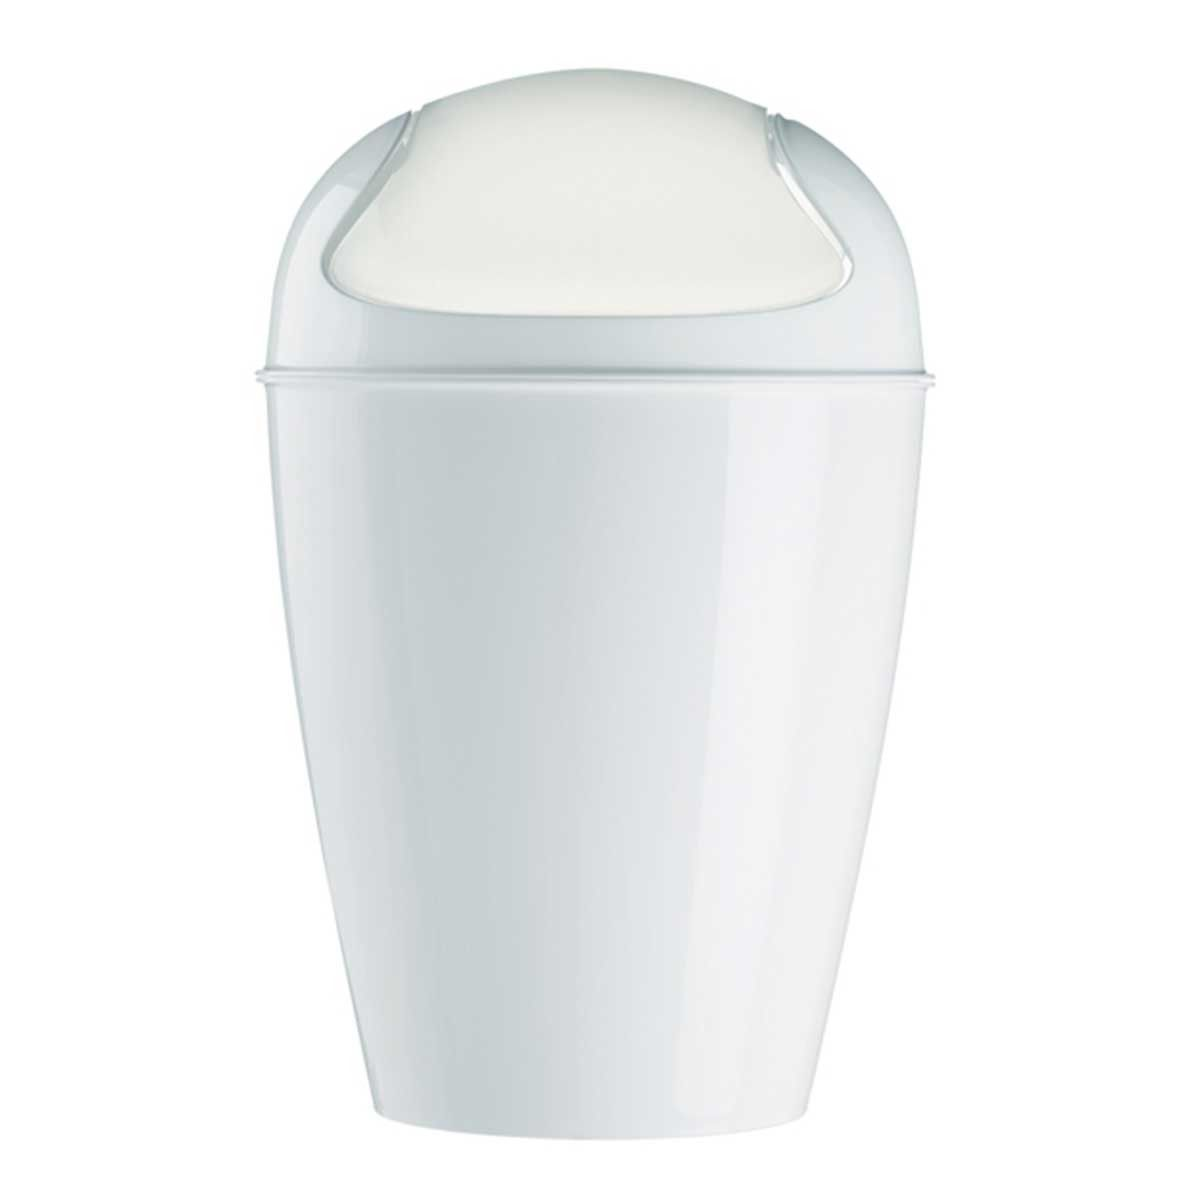 This Medium Swing-Top Waste Basket from Koziol is a handy ...